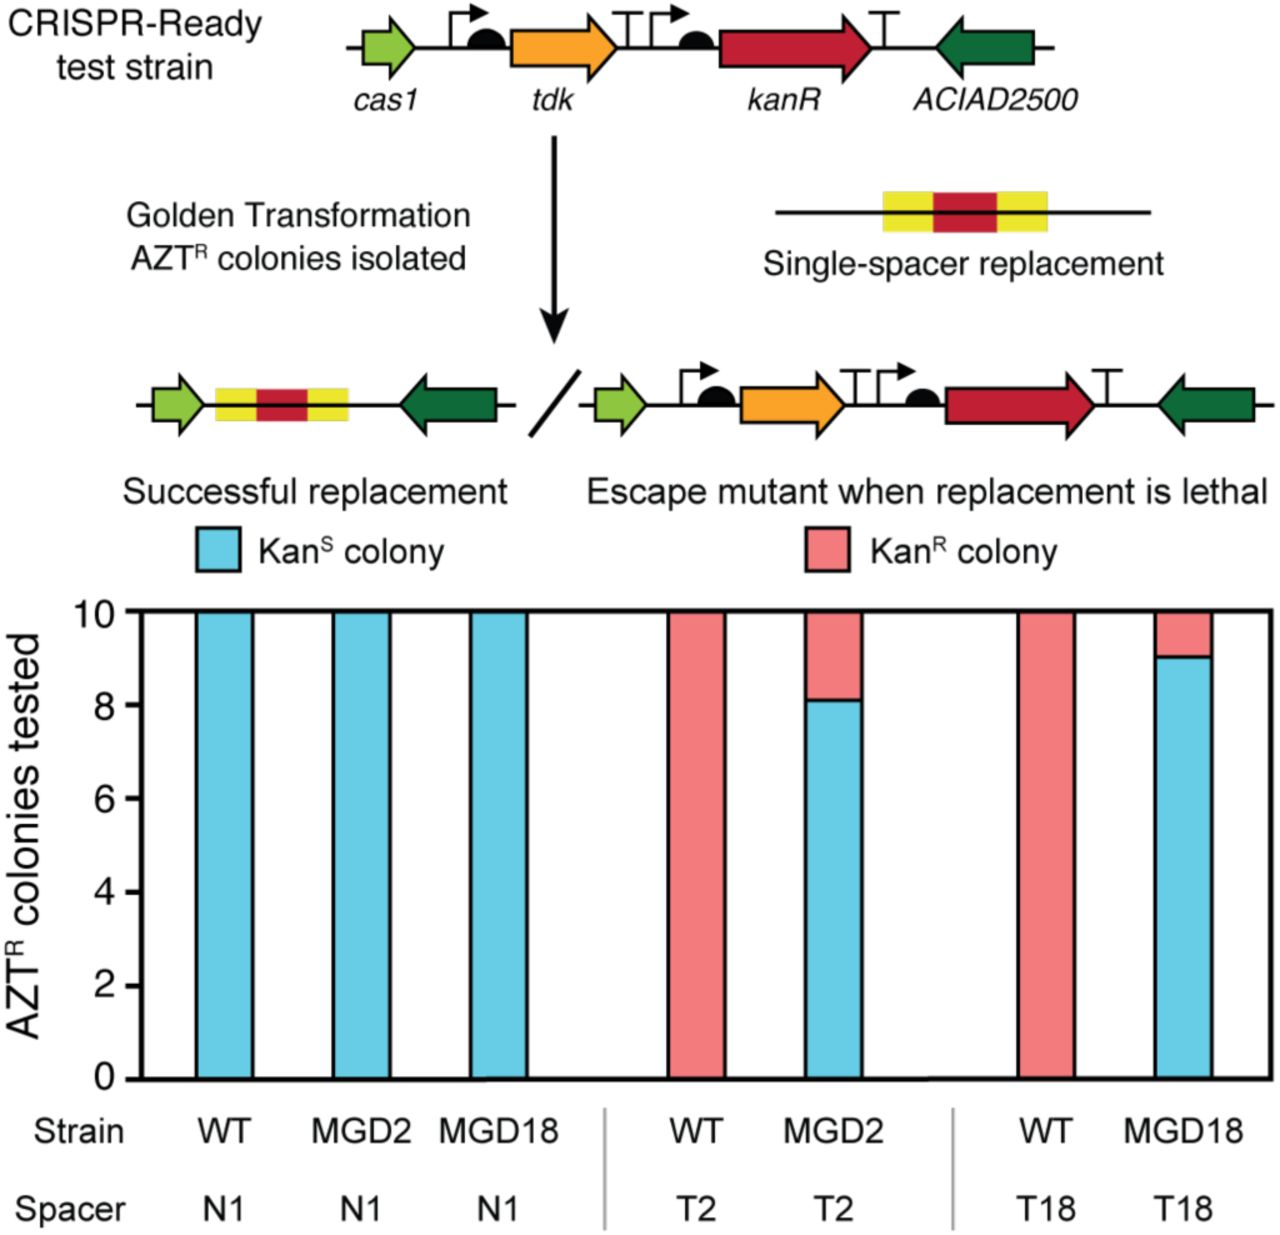 """Self-targeting spacers can be used to assure deletions and create a CRISPR-Lock. CRISPR-Ready variants of wild-type ADP1-ISx (WT) and two multiple gene deletions strains (MGD2 and MGD18) were transformed with different spacers to assess the presence of a sequence located within the putatively deleted region. N1 added back the first spacer sequence from the native CRISPR array. It serves as a control because it does not target any sequence in the A. baylyi genome. T2 and T18 are spacers that match sequences in the ADP1-ISx genome that are within the regions deleted in the corresponding MGD strains. For each strain-spacer combination tested, 10 AZT R colonies were isolated after transformation with the single-spacer replacement DNA. Successful integration of the spacer can only occur if the targeted region is not present in the recipient strain's genome. It results in these AZT R colonies also becoming Kan S . If integration of the spacer is lethal, then AZT R colonies are expected to have mutations that inactivate the tdk gene and remain Kan R , as illustrated in the upper panel. Strains with successful spacer integrations from the MGD2+T2 and MGD18+T18 transformations have a """"CRISPR-Lock"""" in their genomes that can prevent re-acquisition of the deleted regions when combining multiple deletions in further stages of the genome streamlining project."""